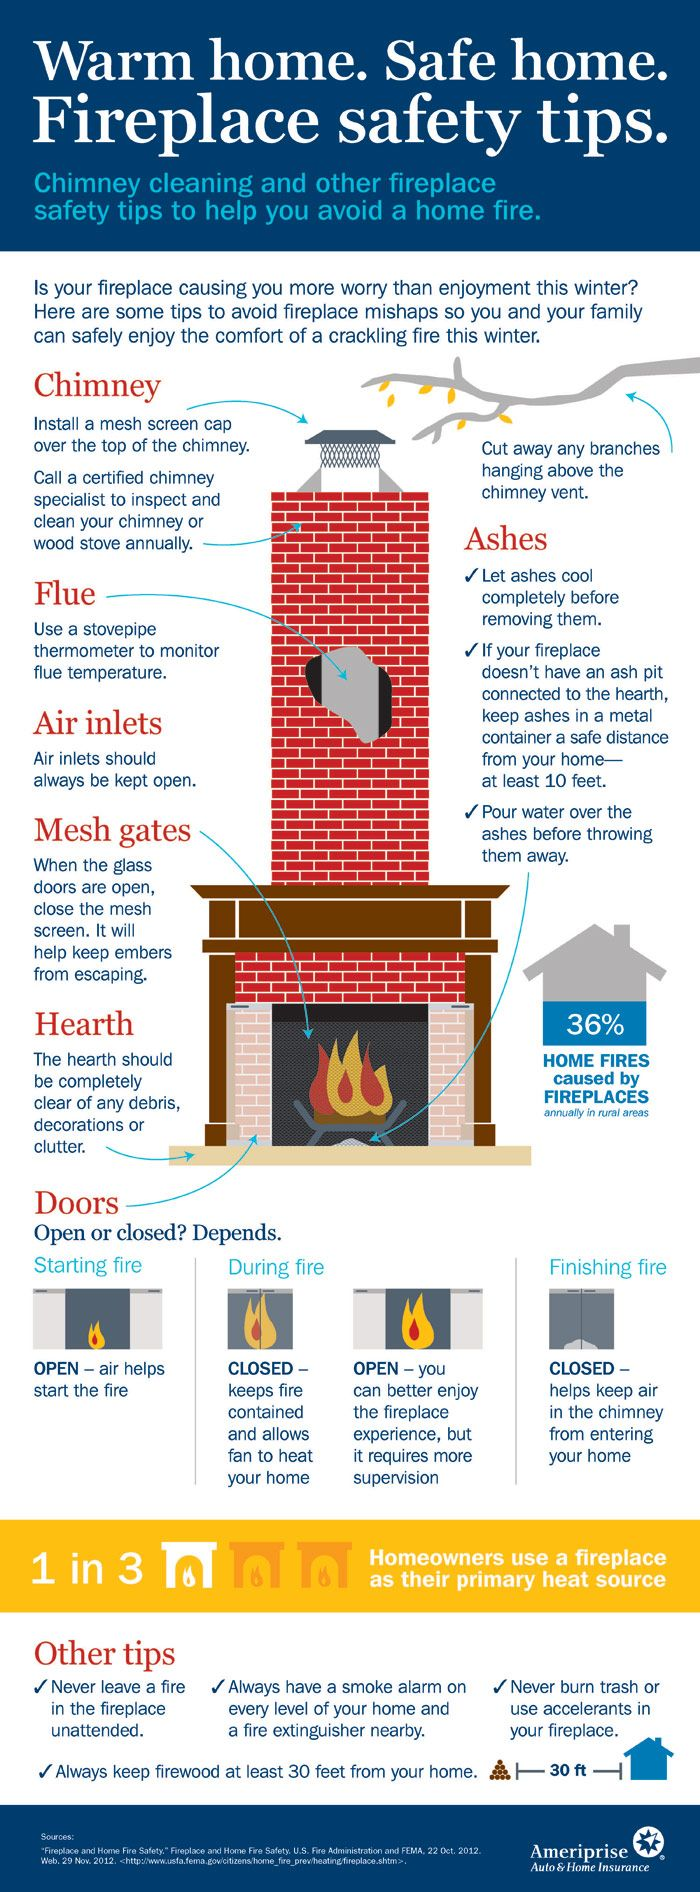 Fireplace safety creates a warm and safe home for your family and these fire safety tips should help